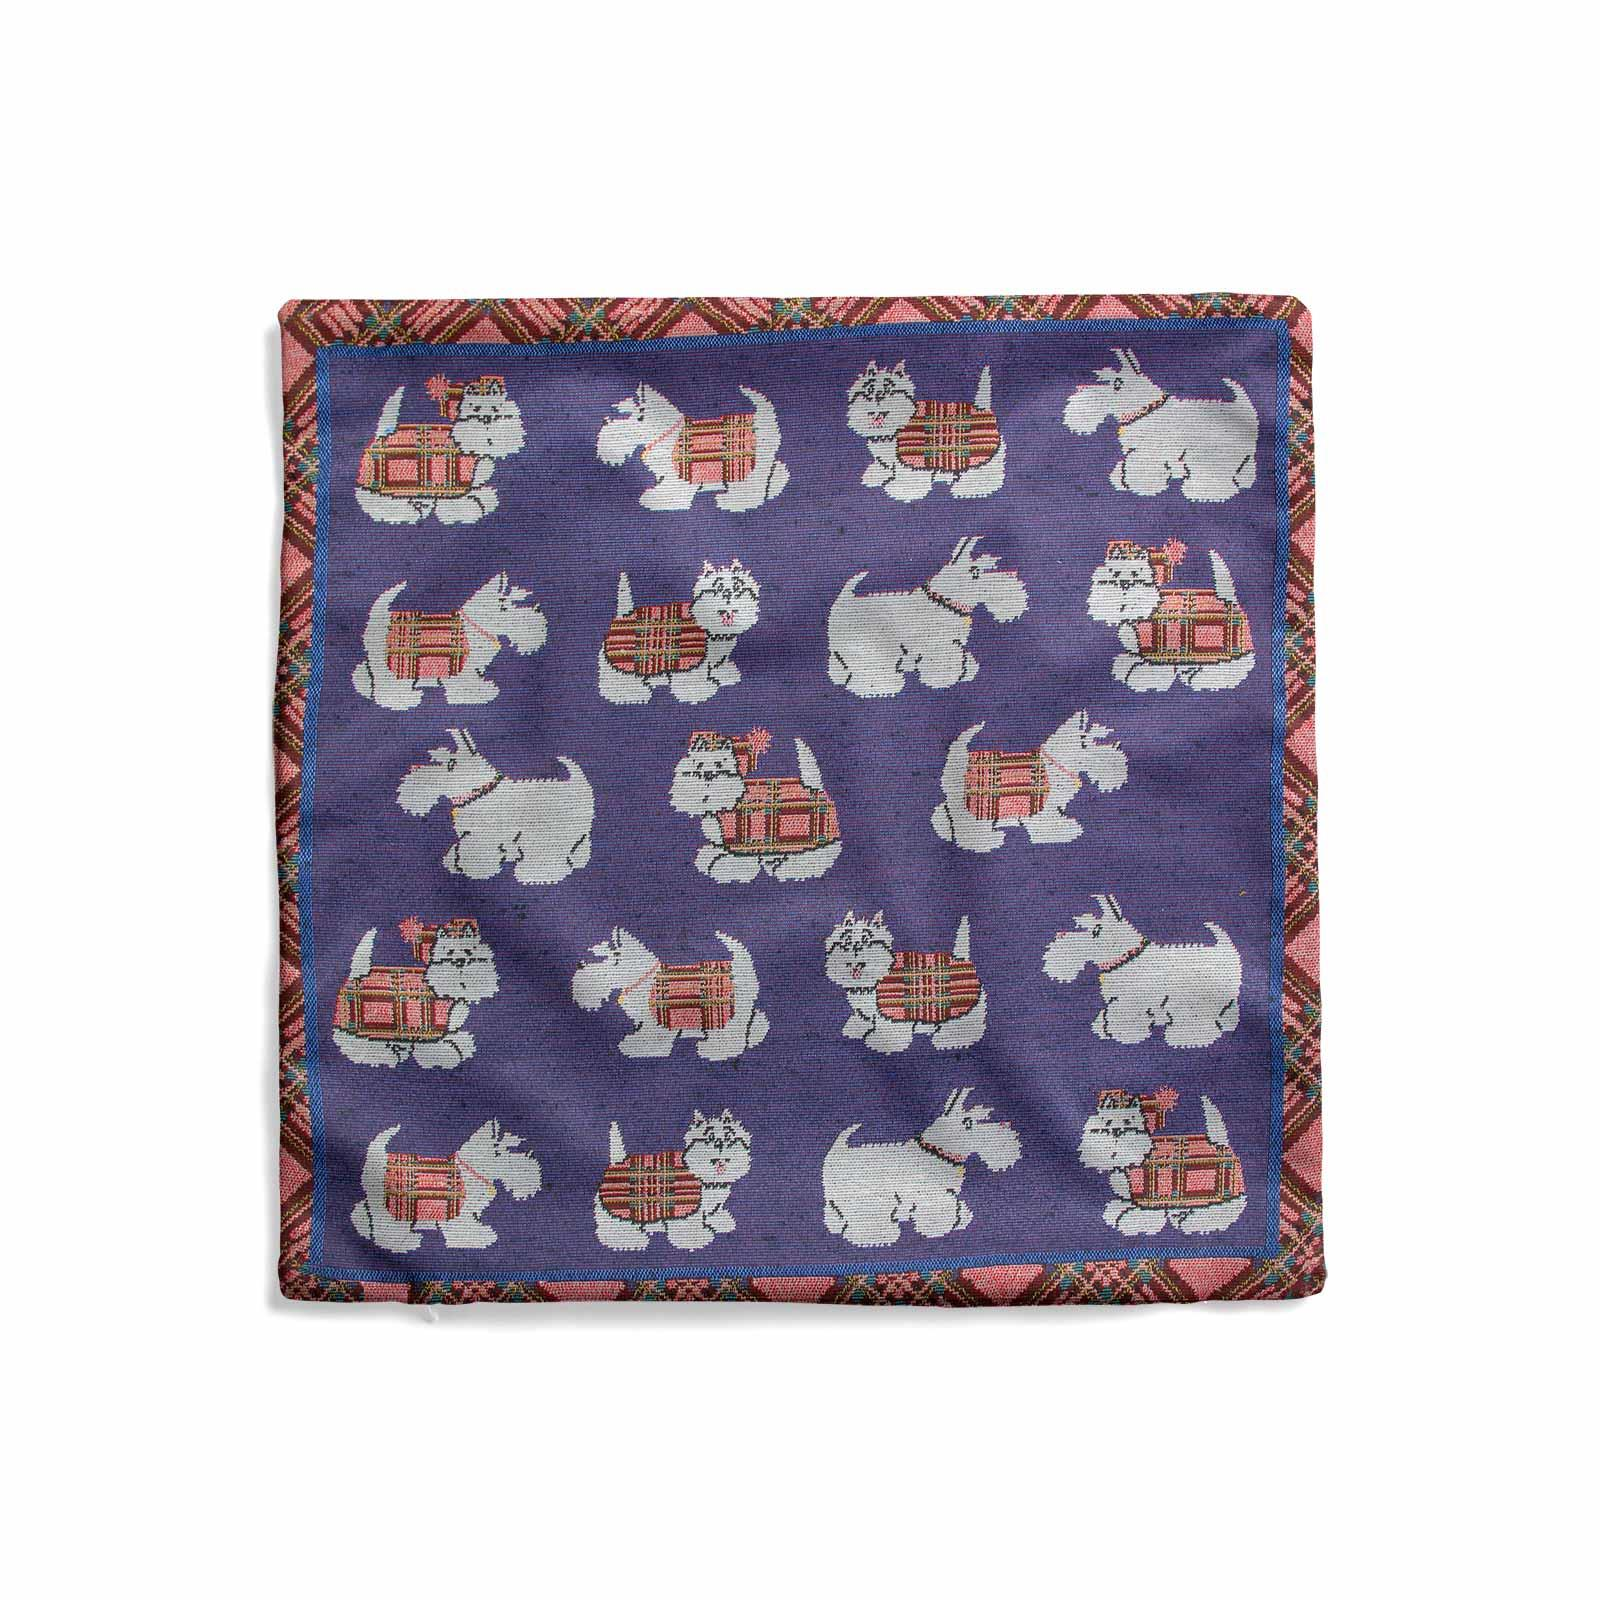 Tapestry-Cushion-Covers-Vintage-Pillow-Cover-Collection-18-034-45cm-Filled-Cushions thumbnail 235